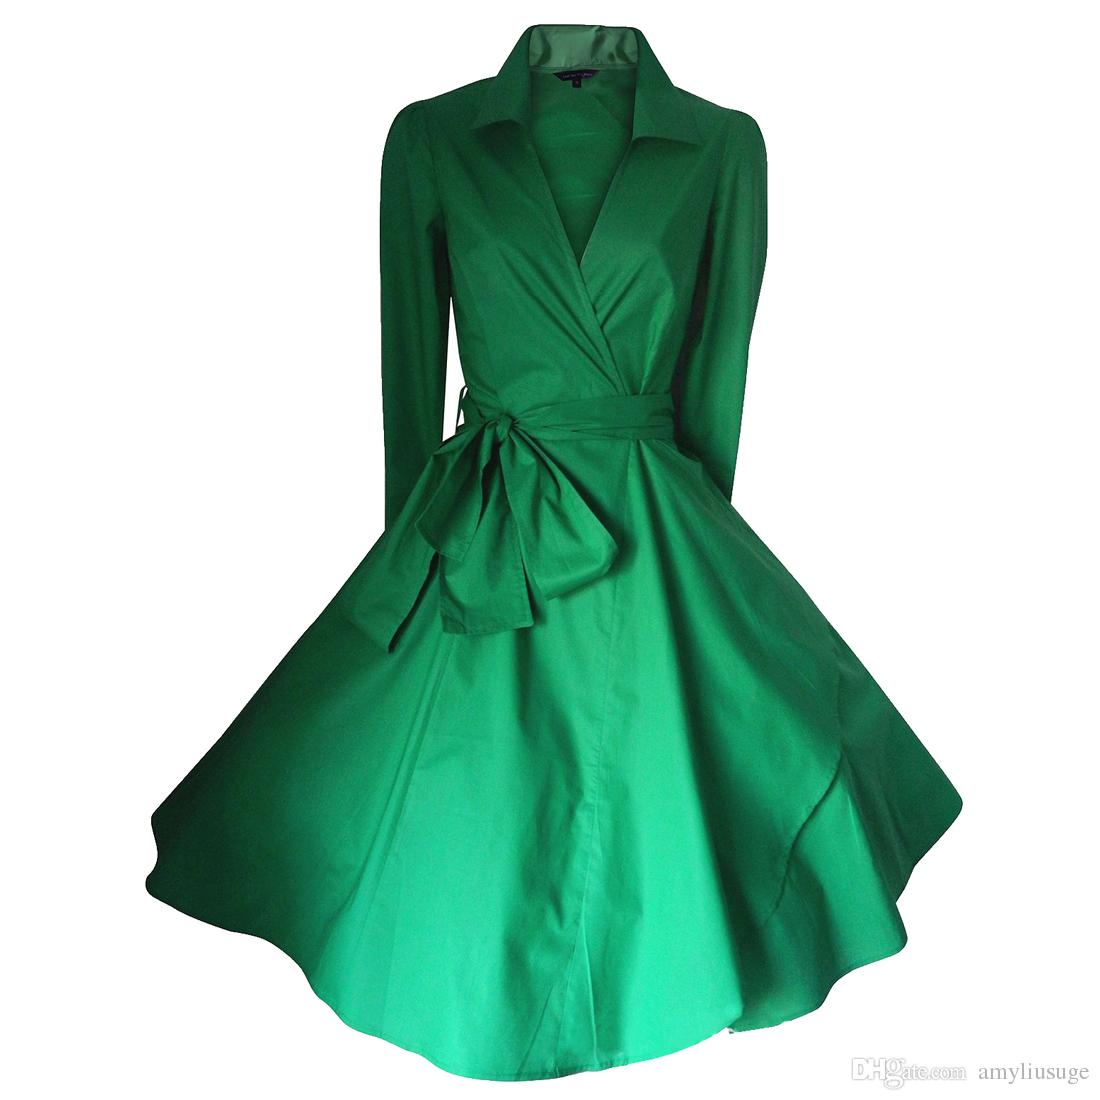 Vintage 1940s 50s Shirtwaist Flared Dress Swing Skaters Wrap Ball ...